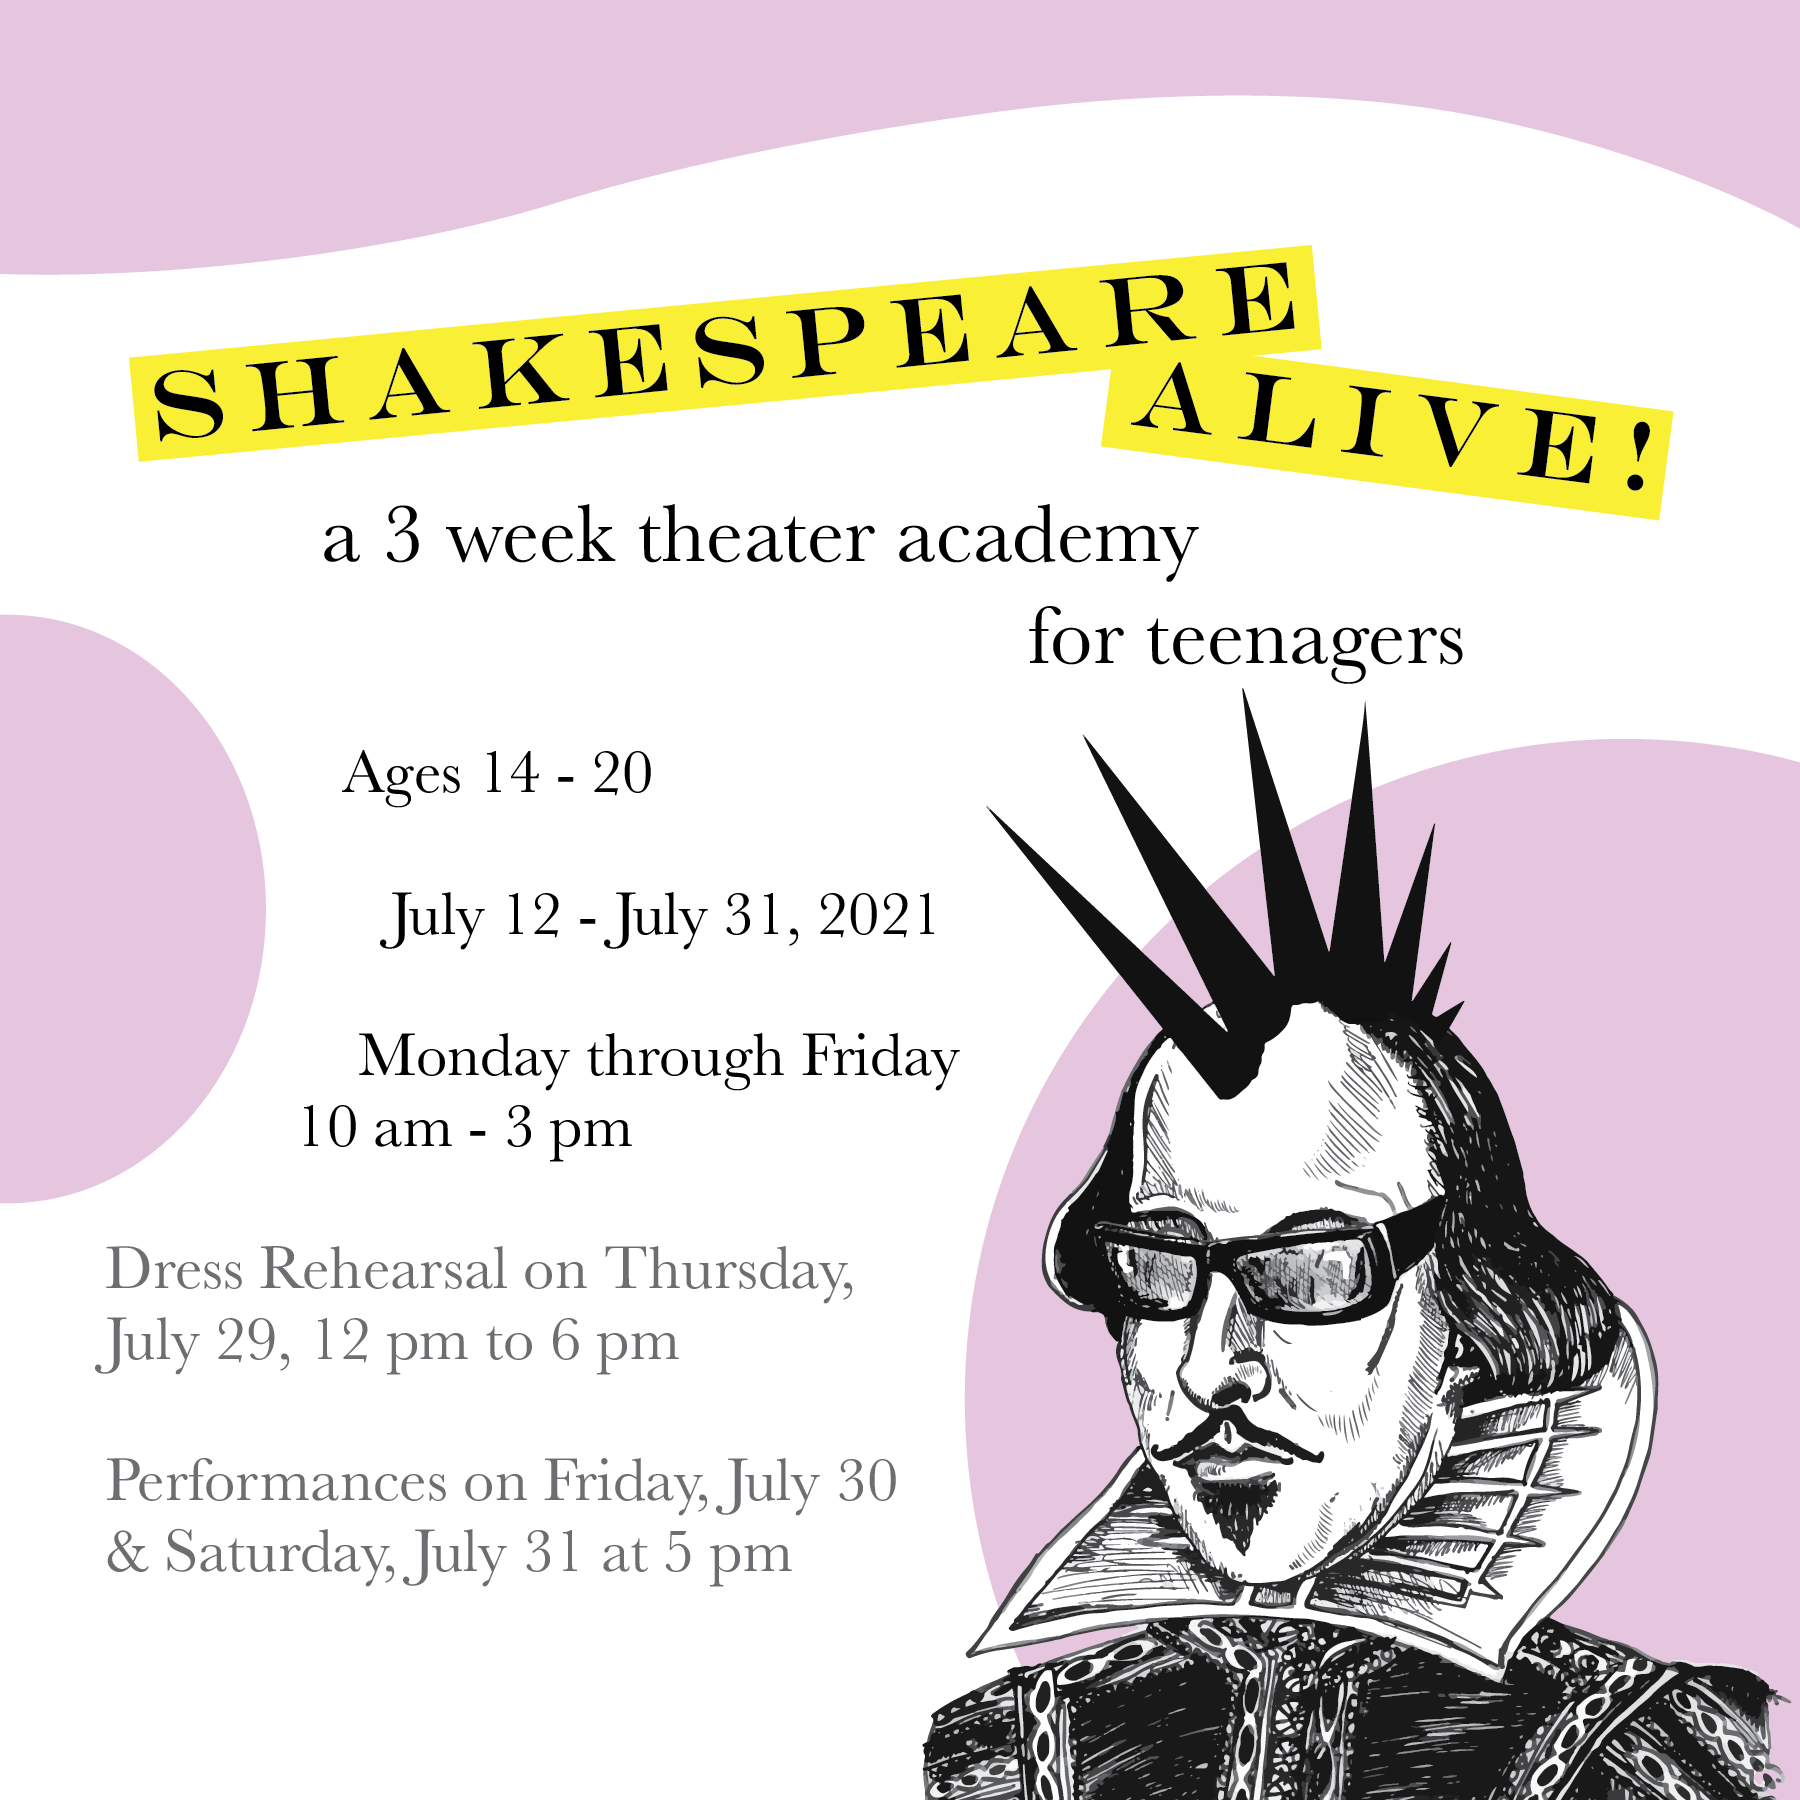 Shakespeare Summer Theater Academy for Teens